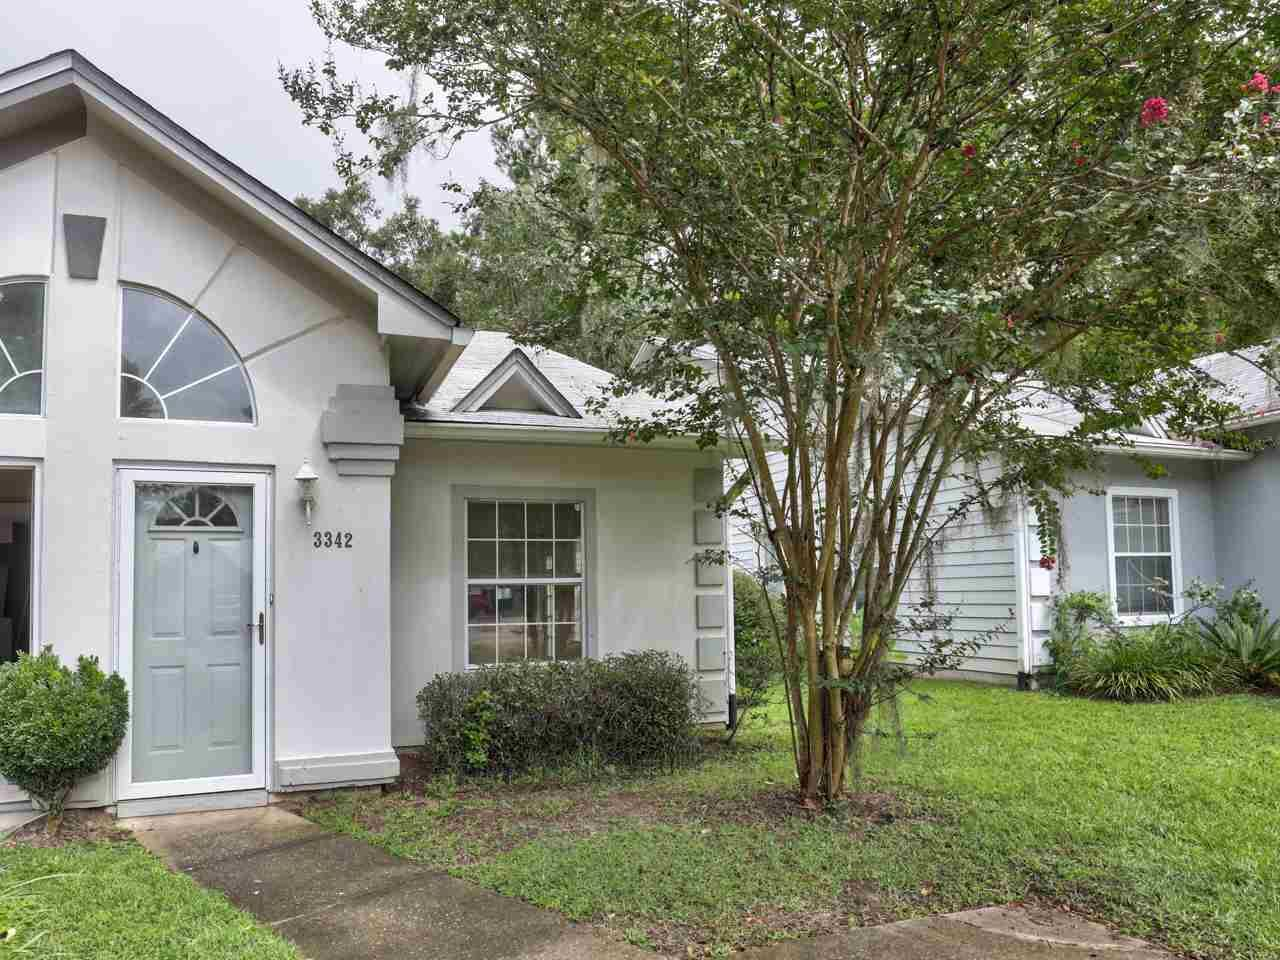 Photo of 3342 Tansey Court, TALLAHASSEE, FL 32308 (MLS # 323530)